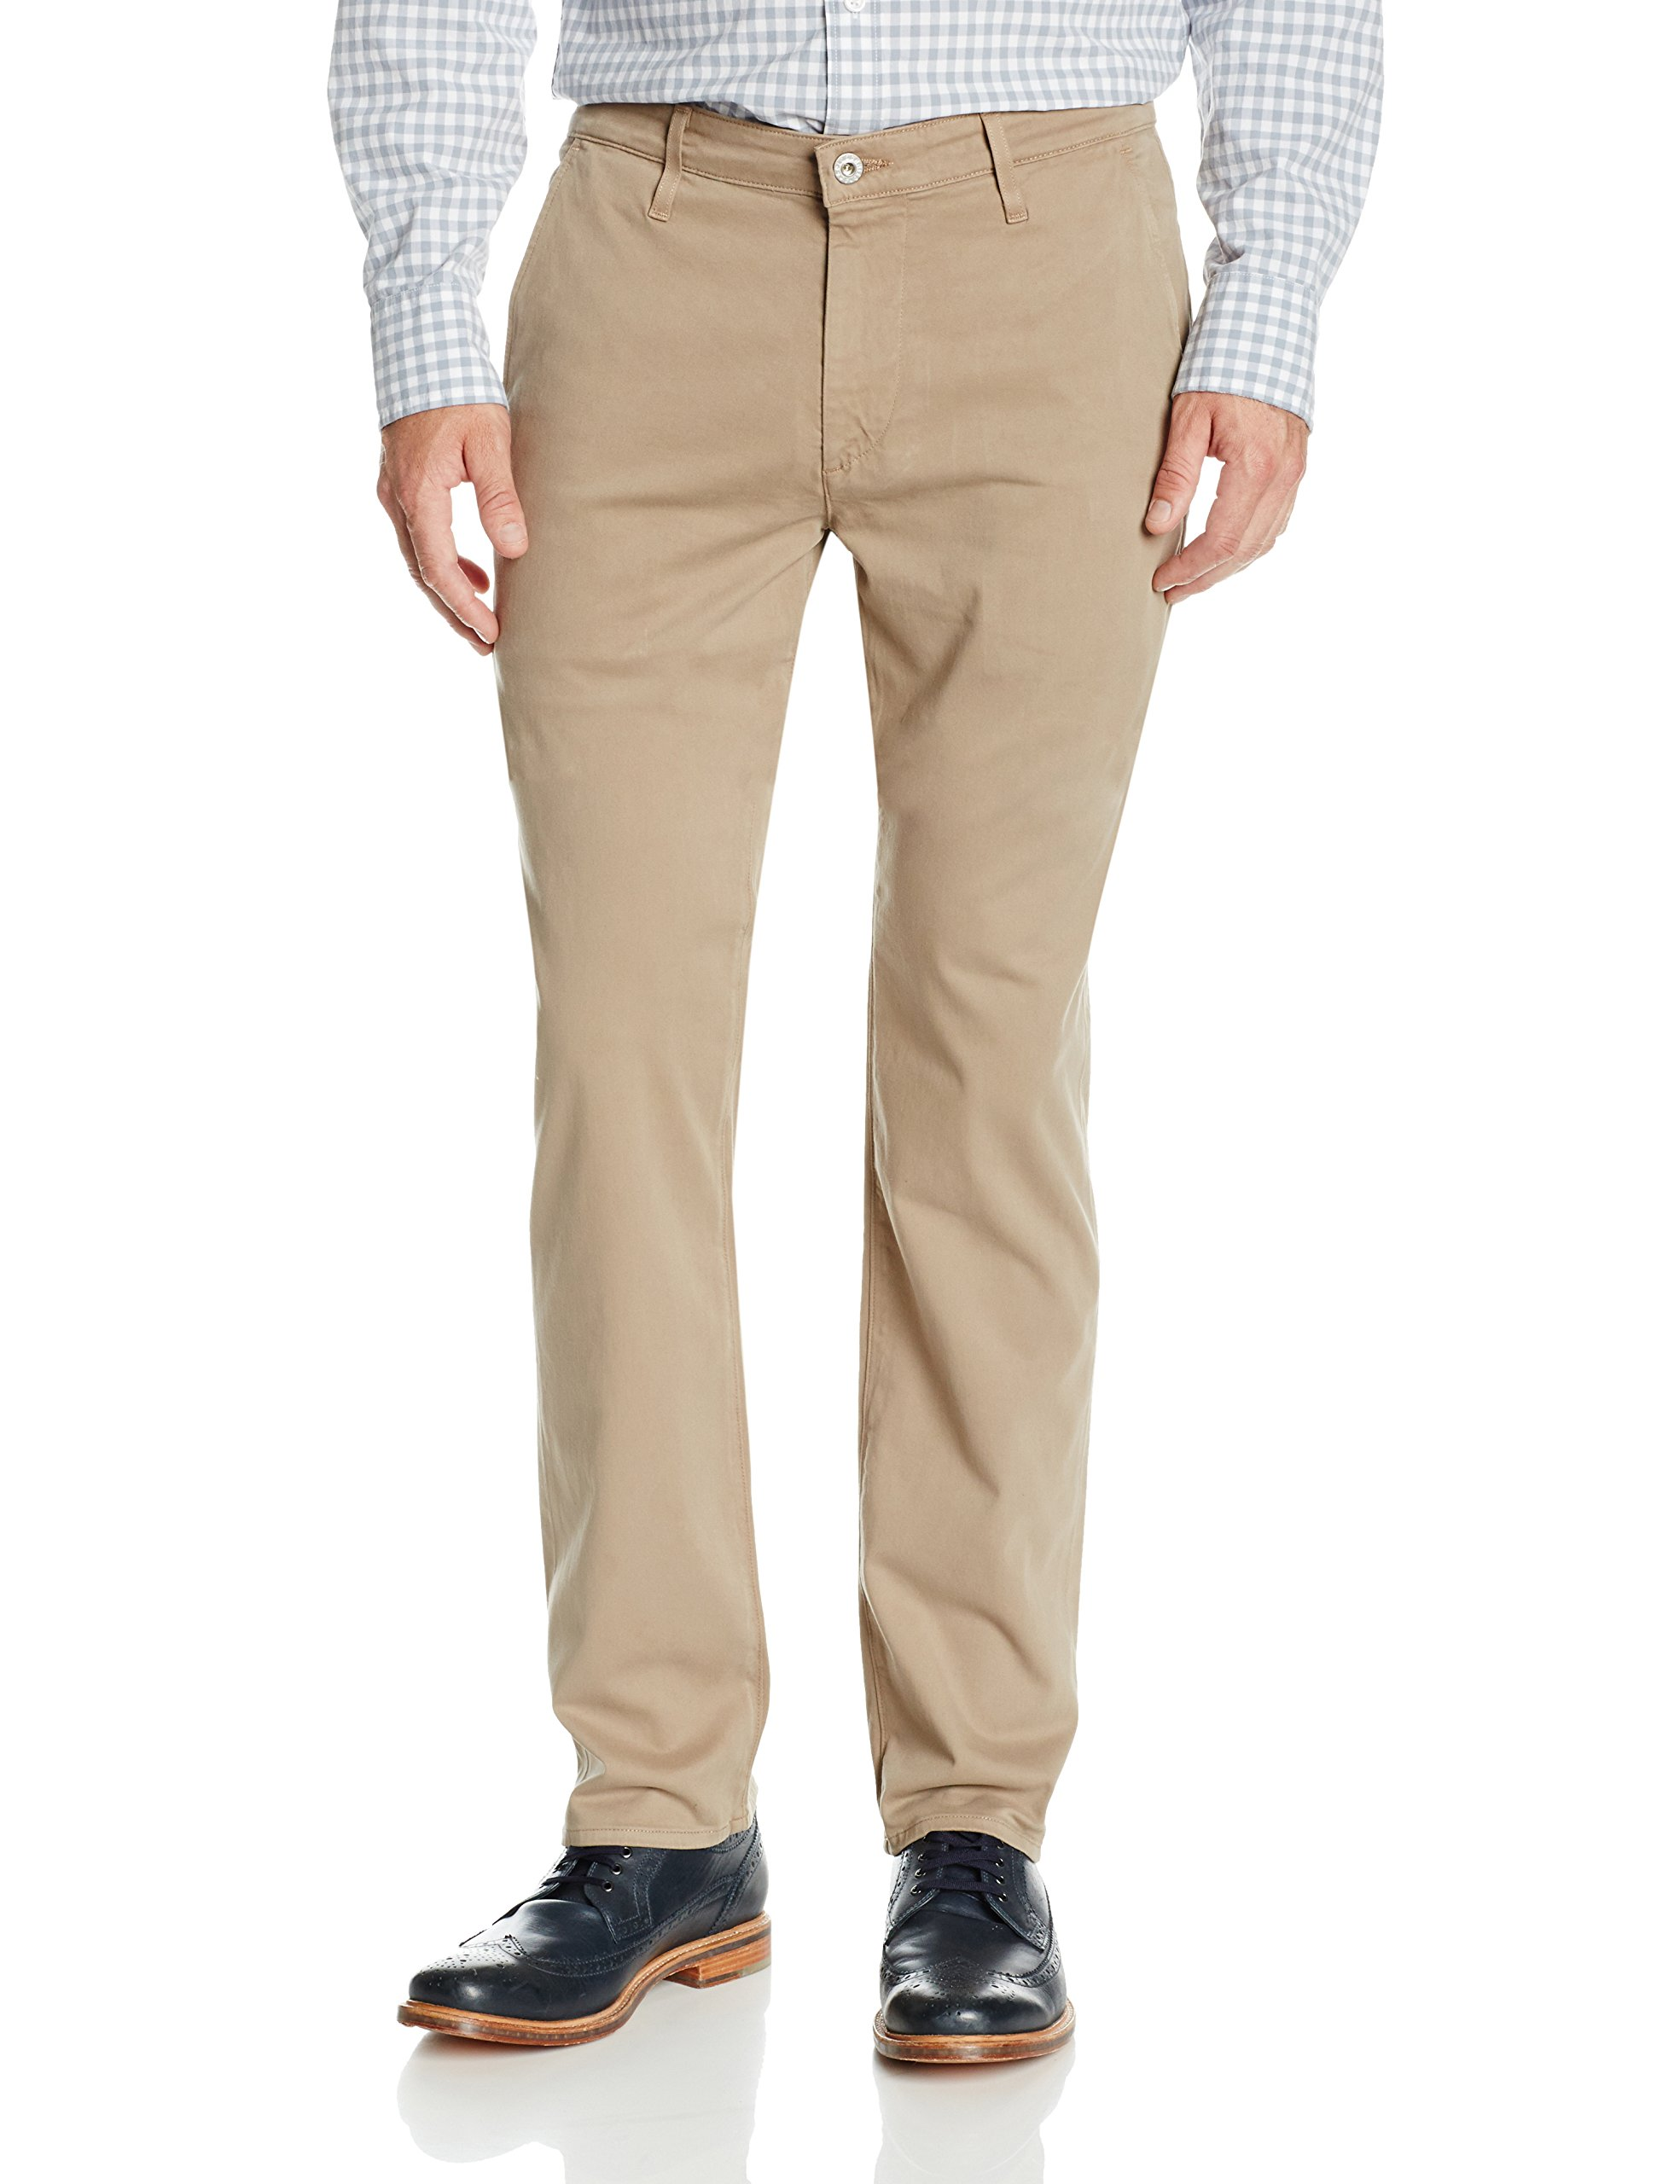 AG Adriano Goldschmied Men's The Lux Khaki Tailored Trouser Pant